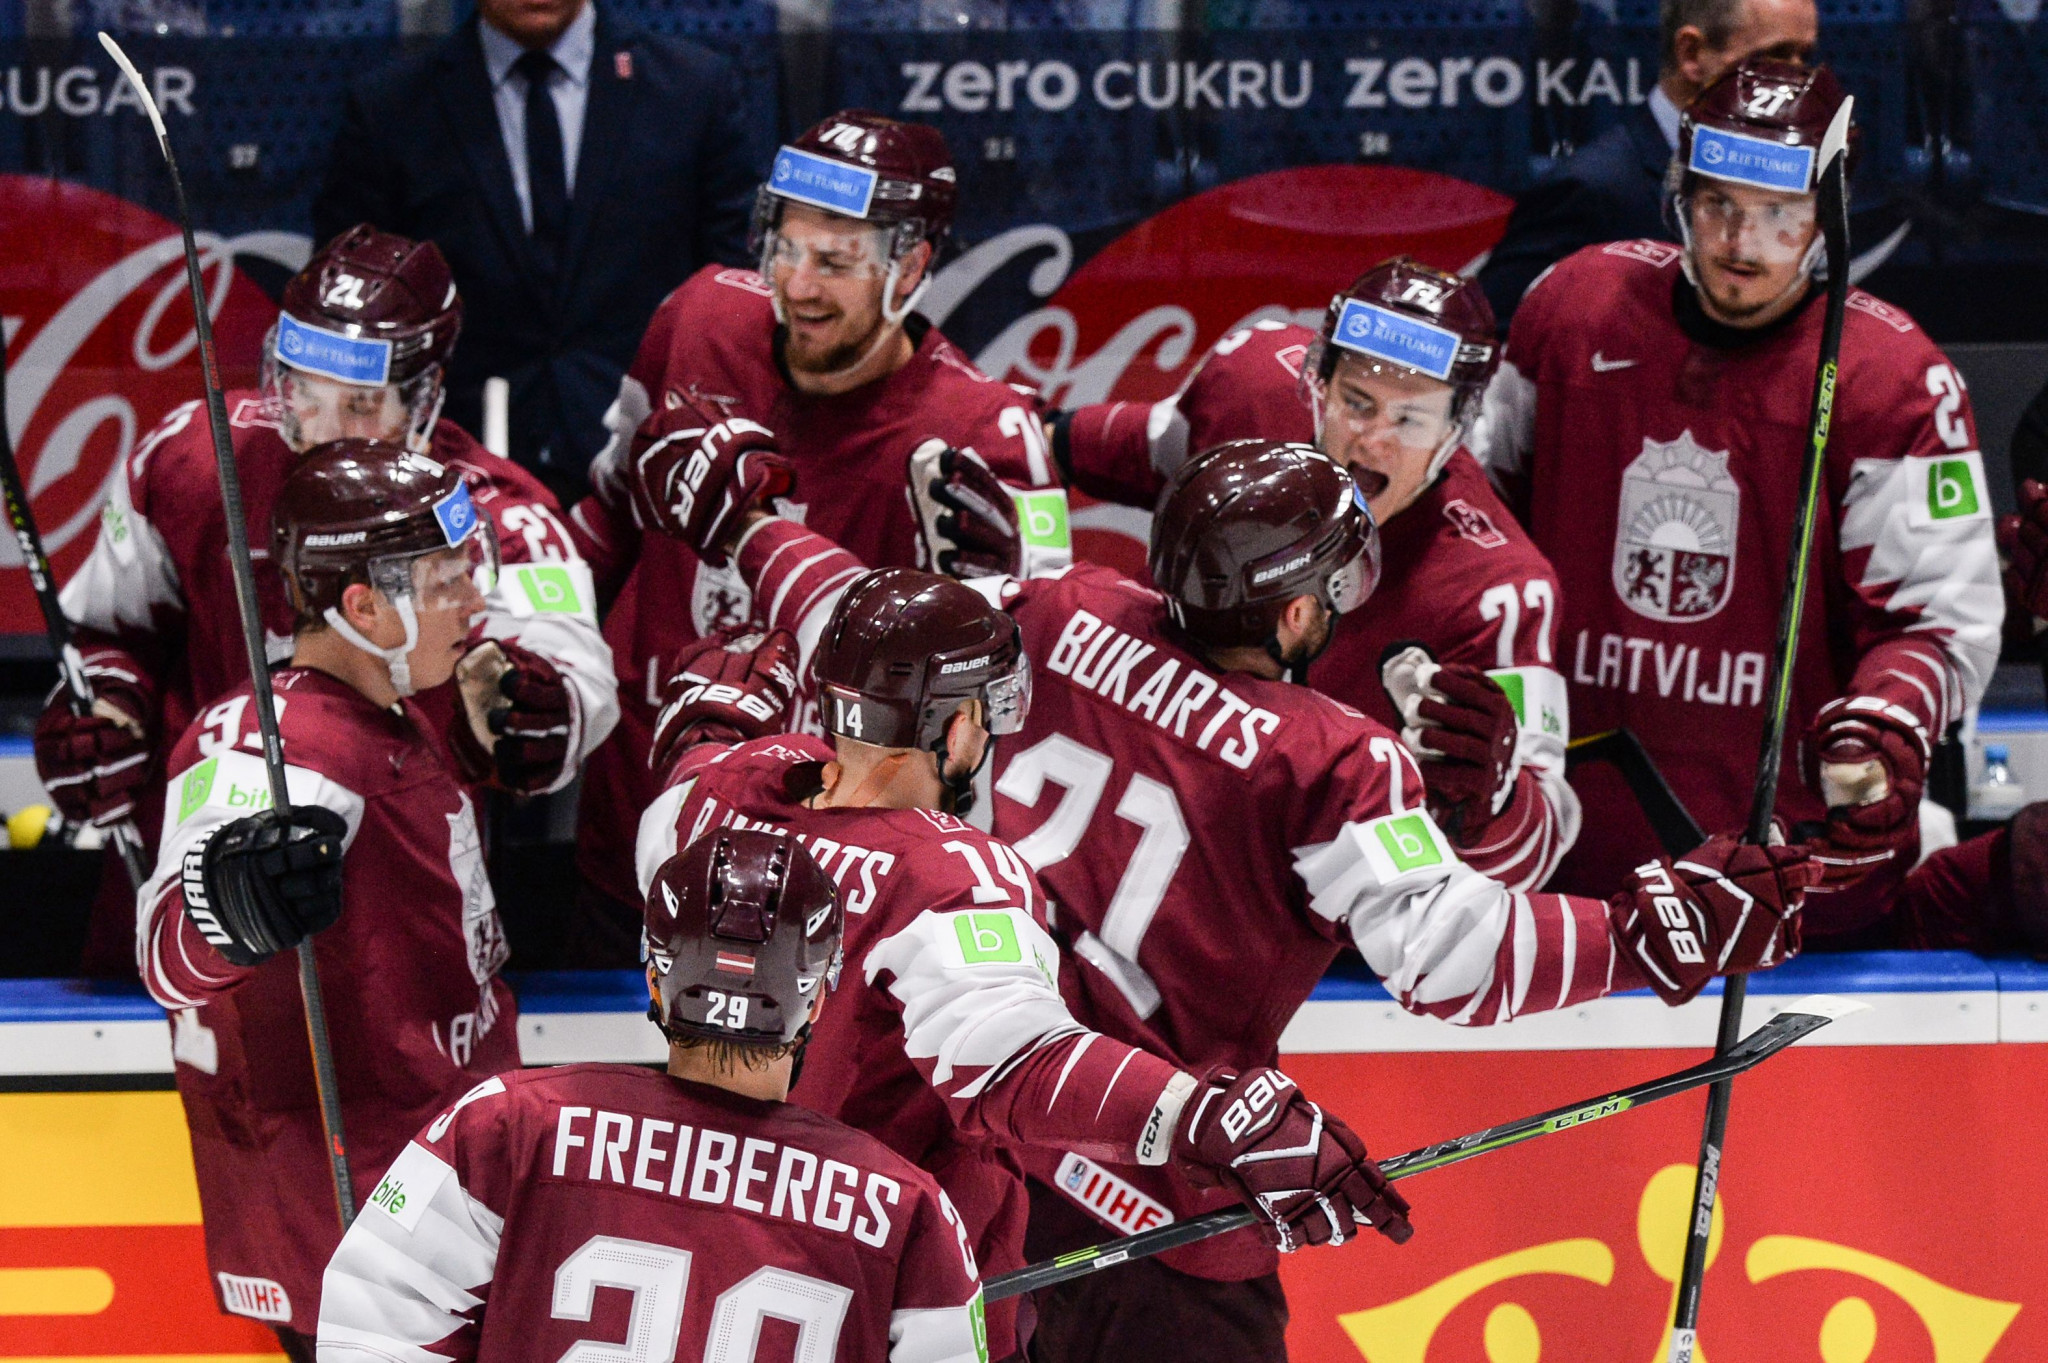 Latvia could become the sole host of this year's IIHF Men's World Championship ©Getty Images